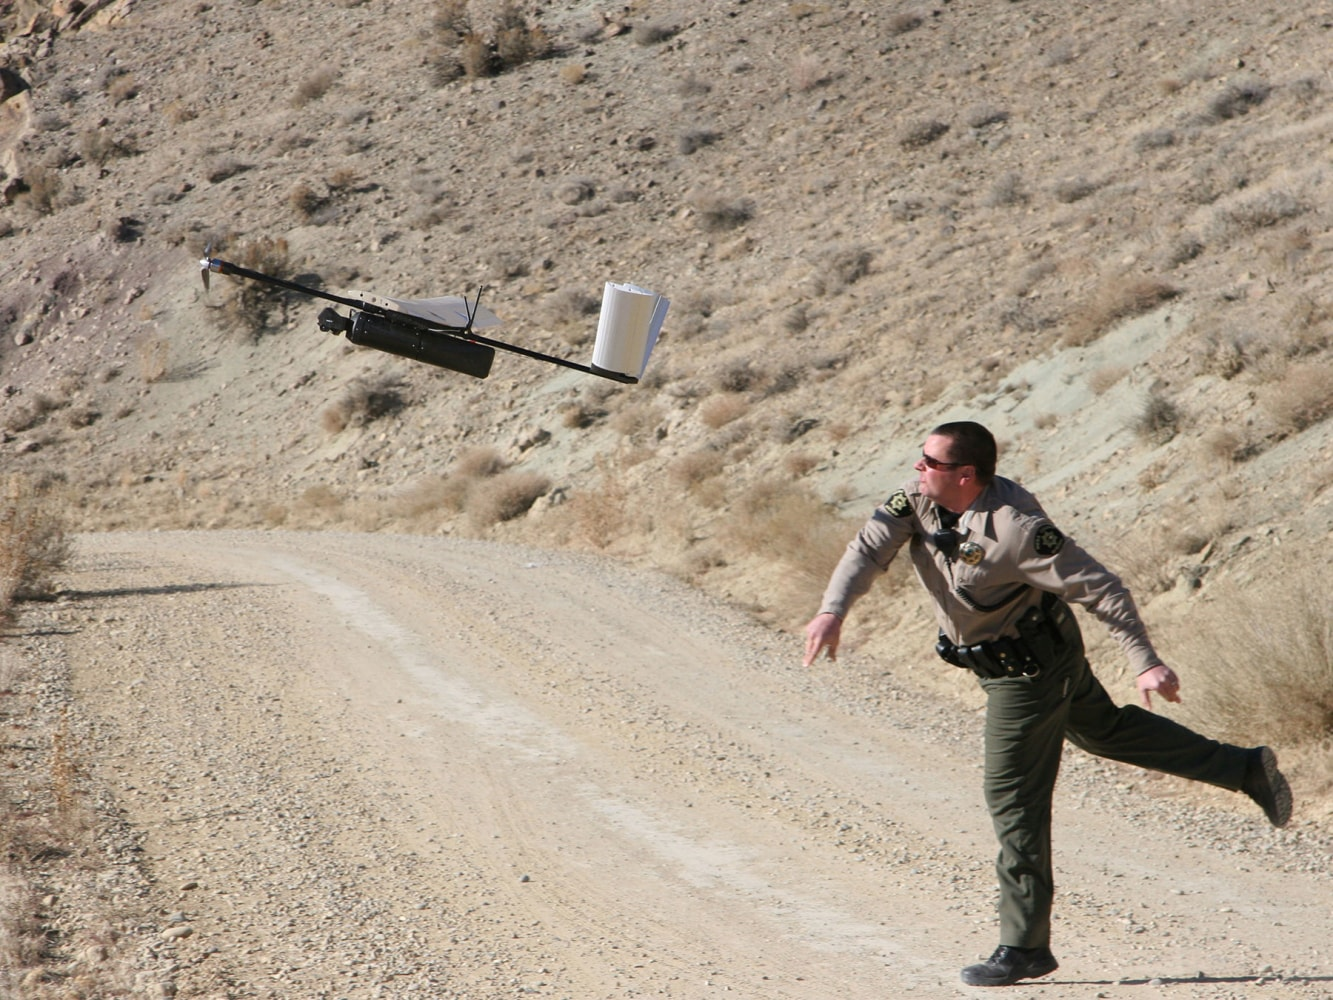 Open season on drones? Town split over licenses to hunt unmanned aircraft